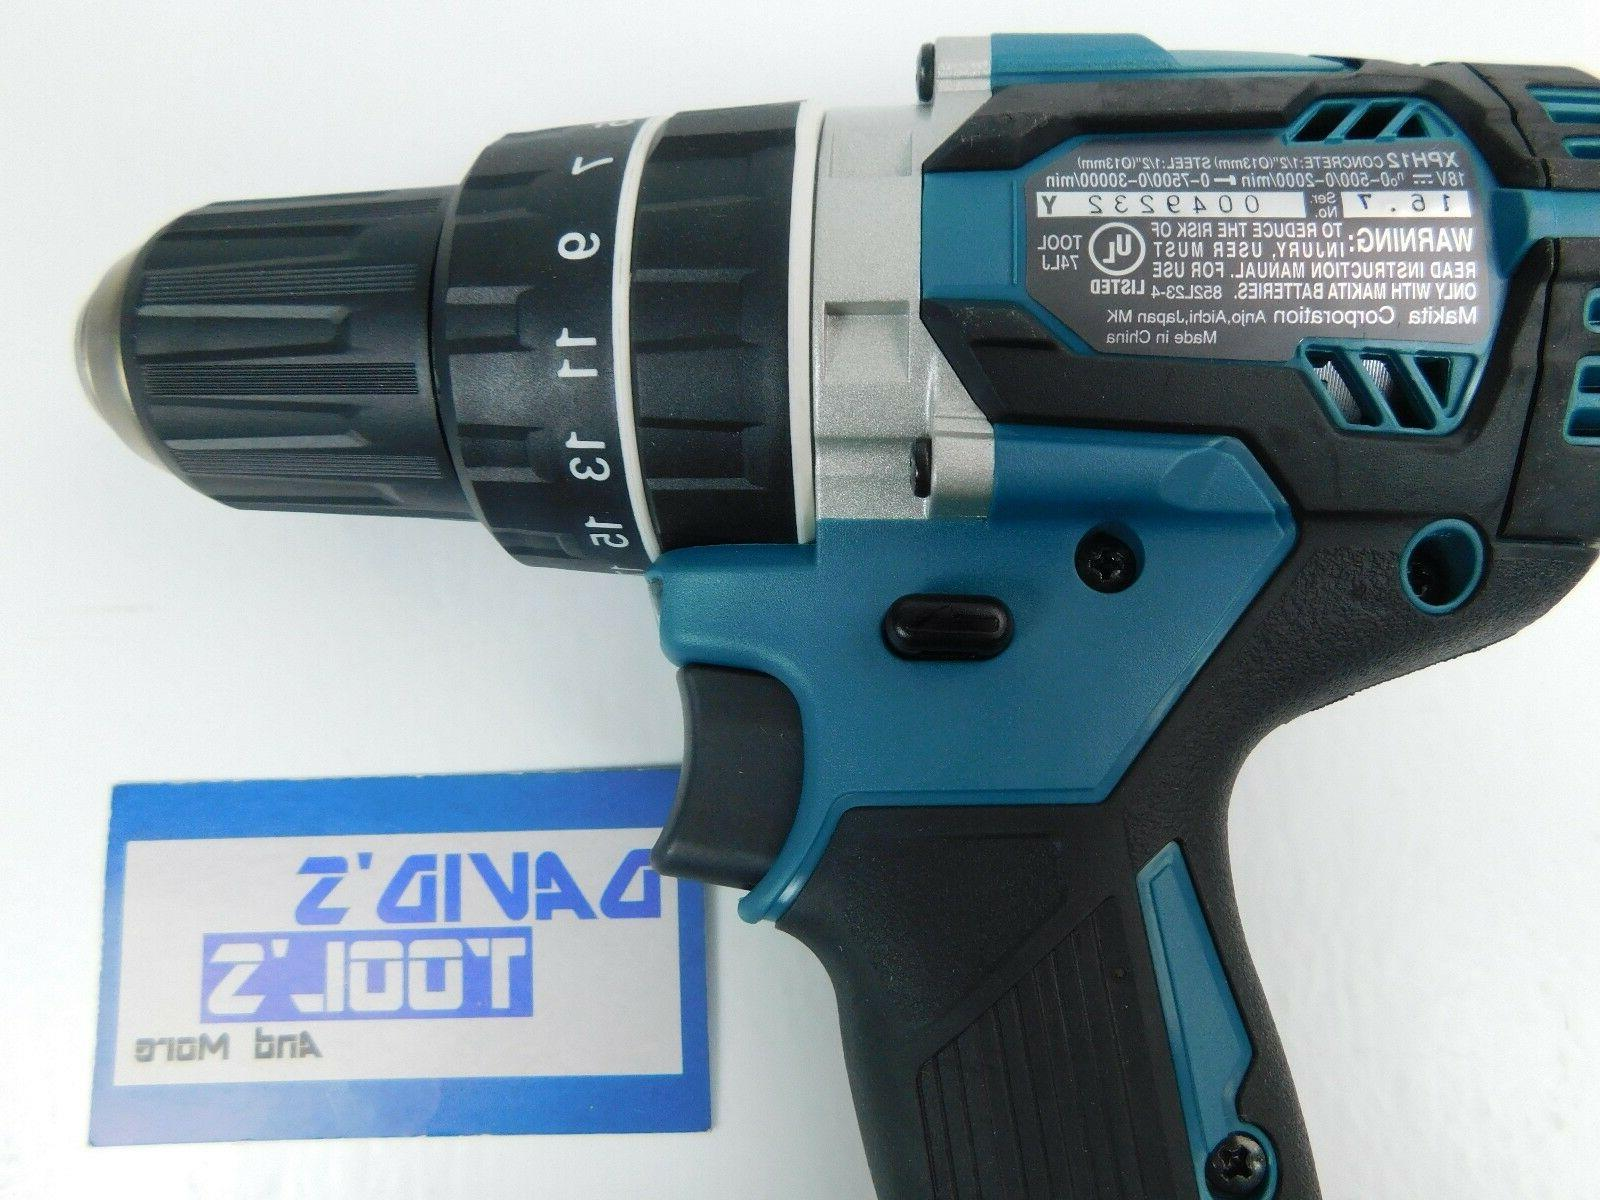 New 18V LXT Lithium-Ion Brushless Cordless Drill